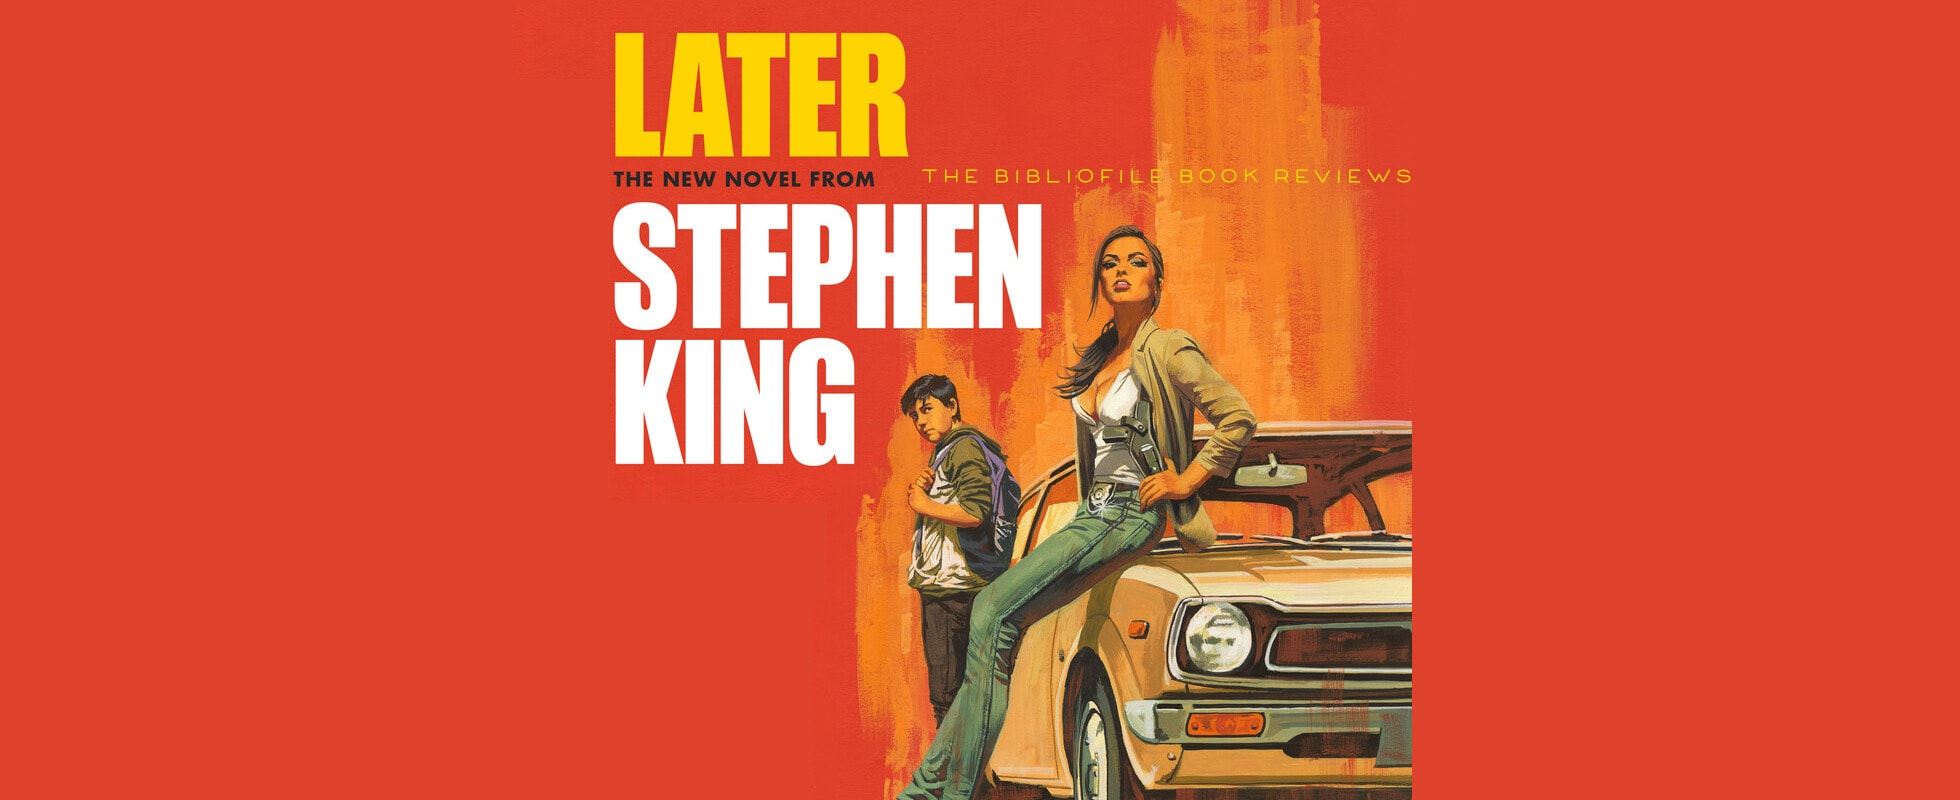 Later by Stephen King Book Summary Review Recap Synopsis